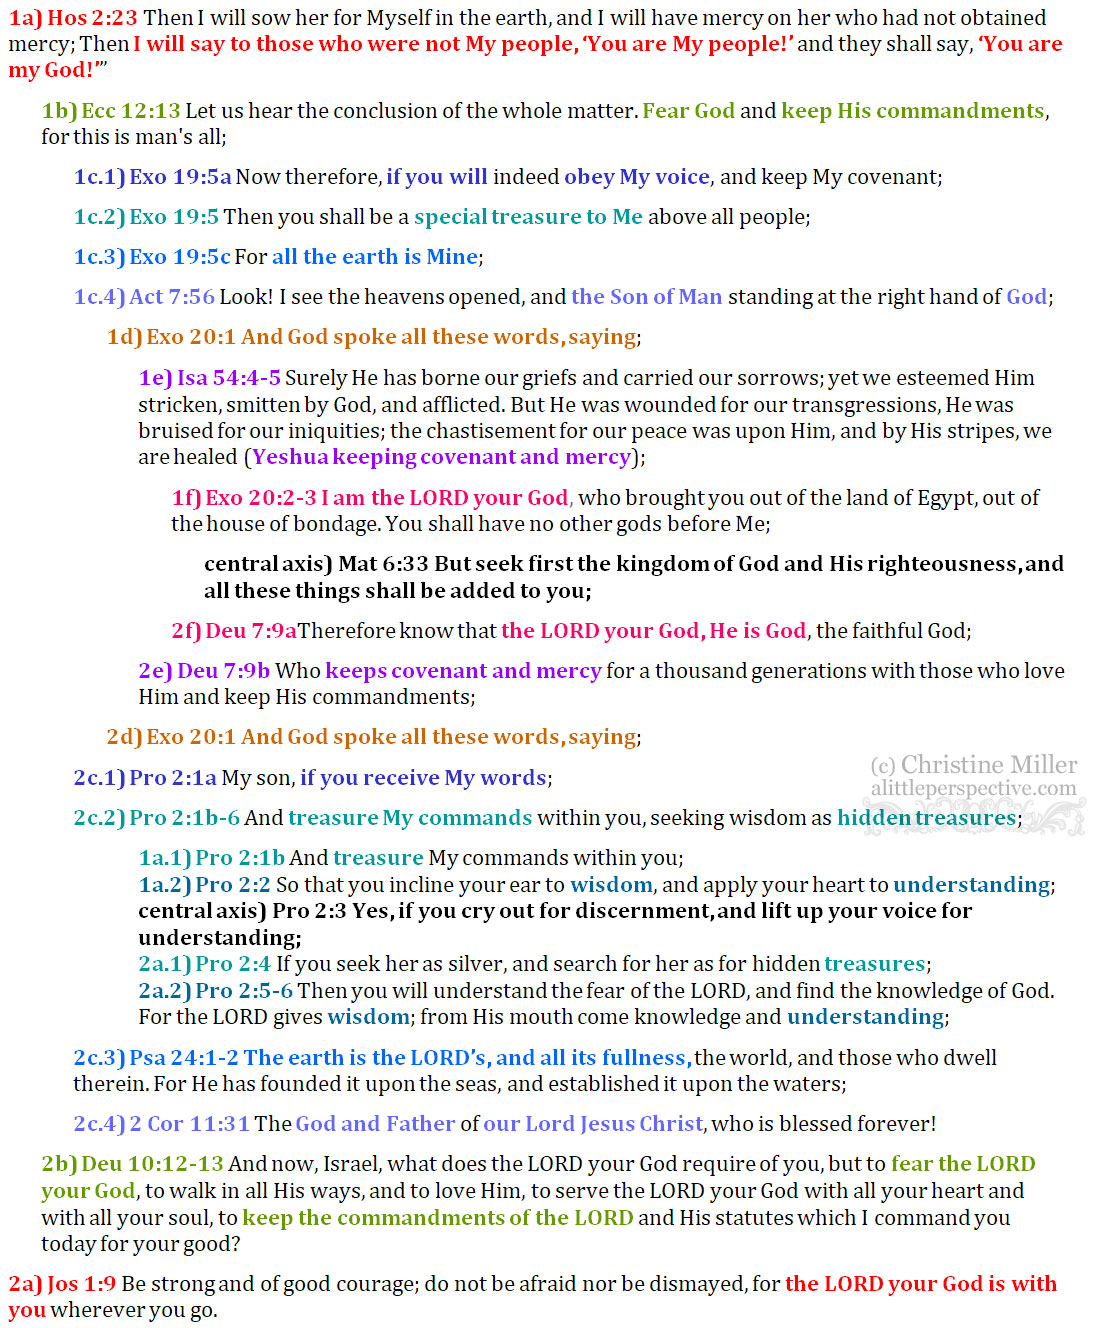 Shabbat prophetic chiasm for Aug 14, 2017 | christine's bible study at alittleperspective.com